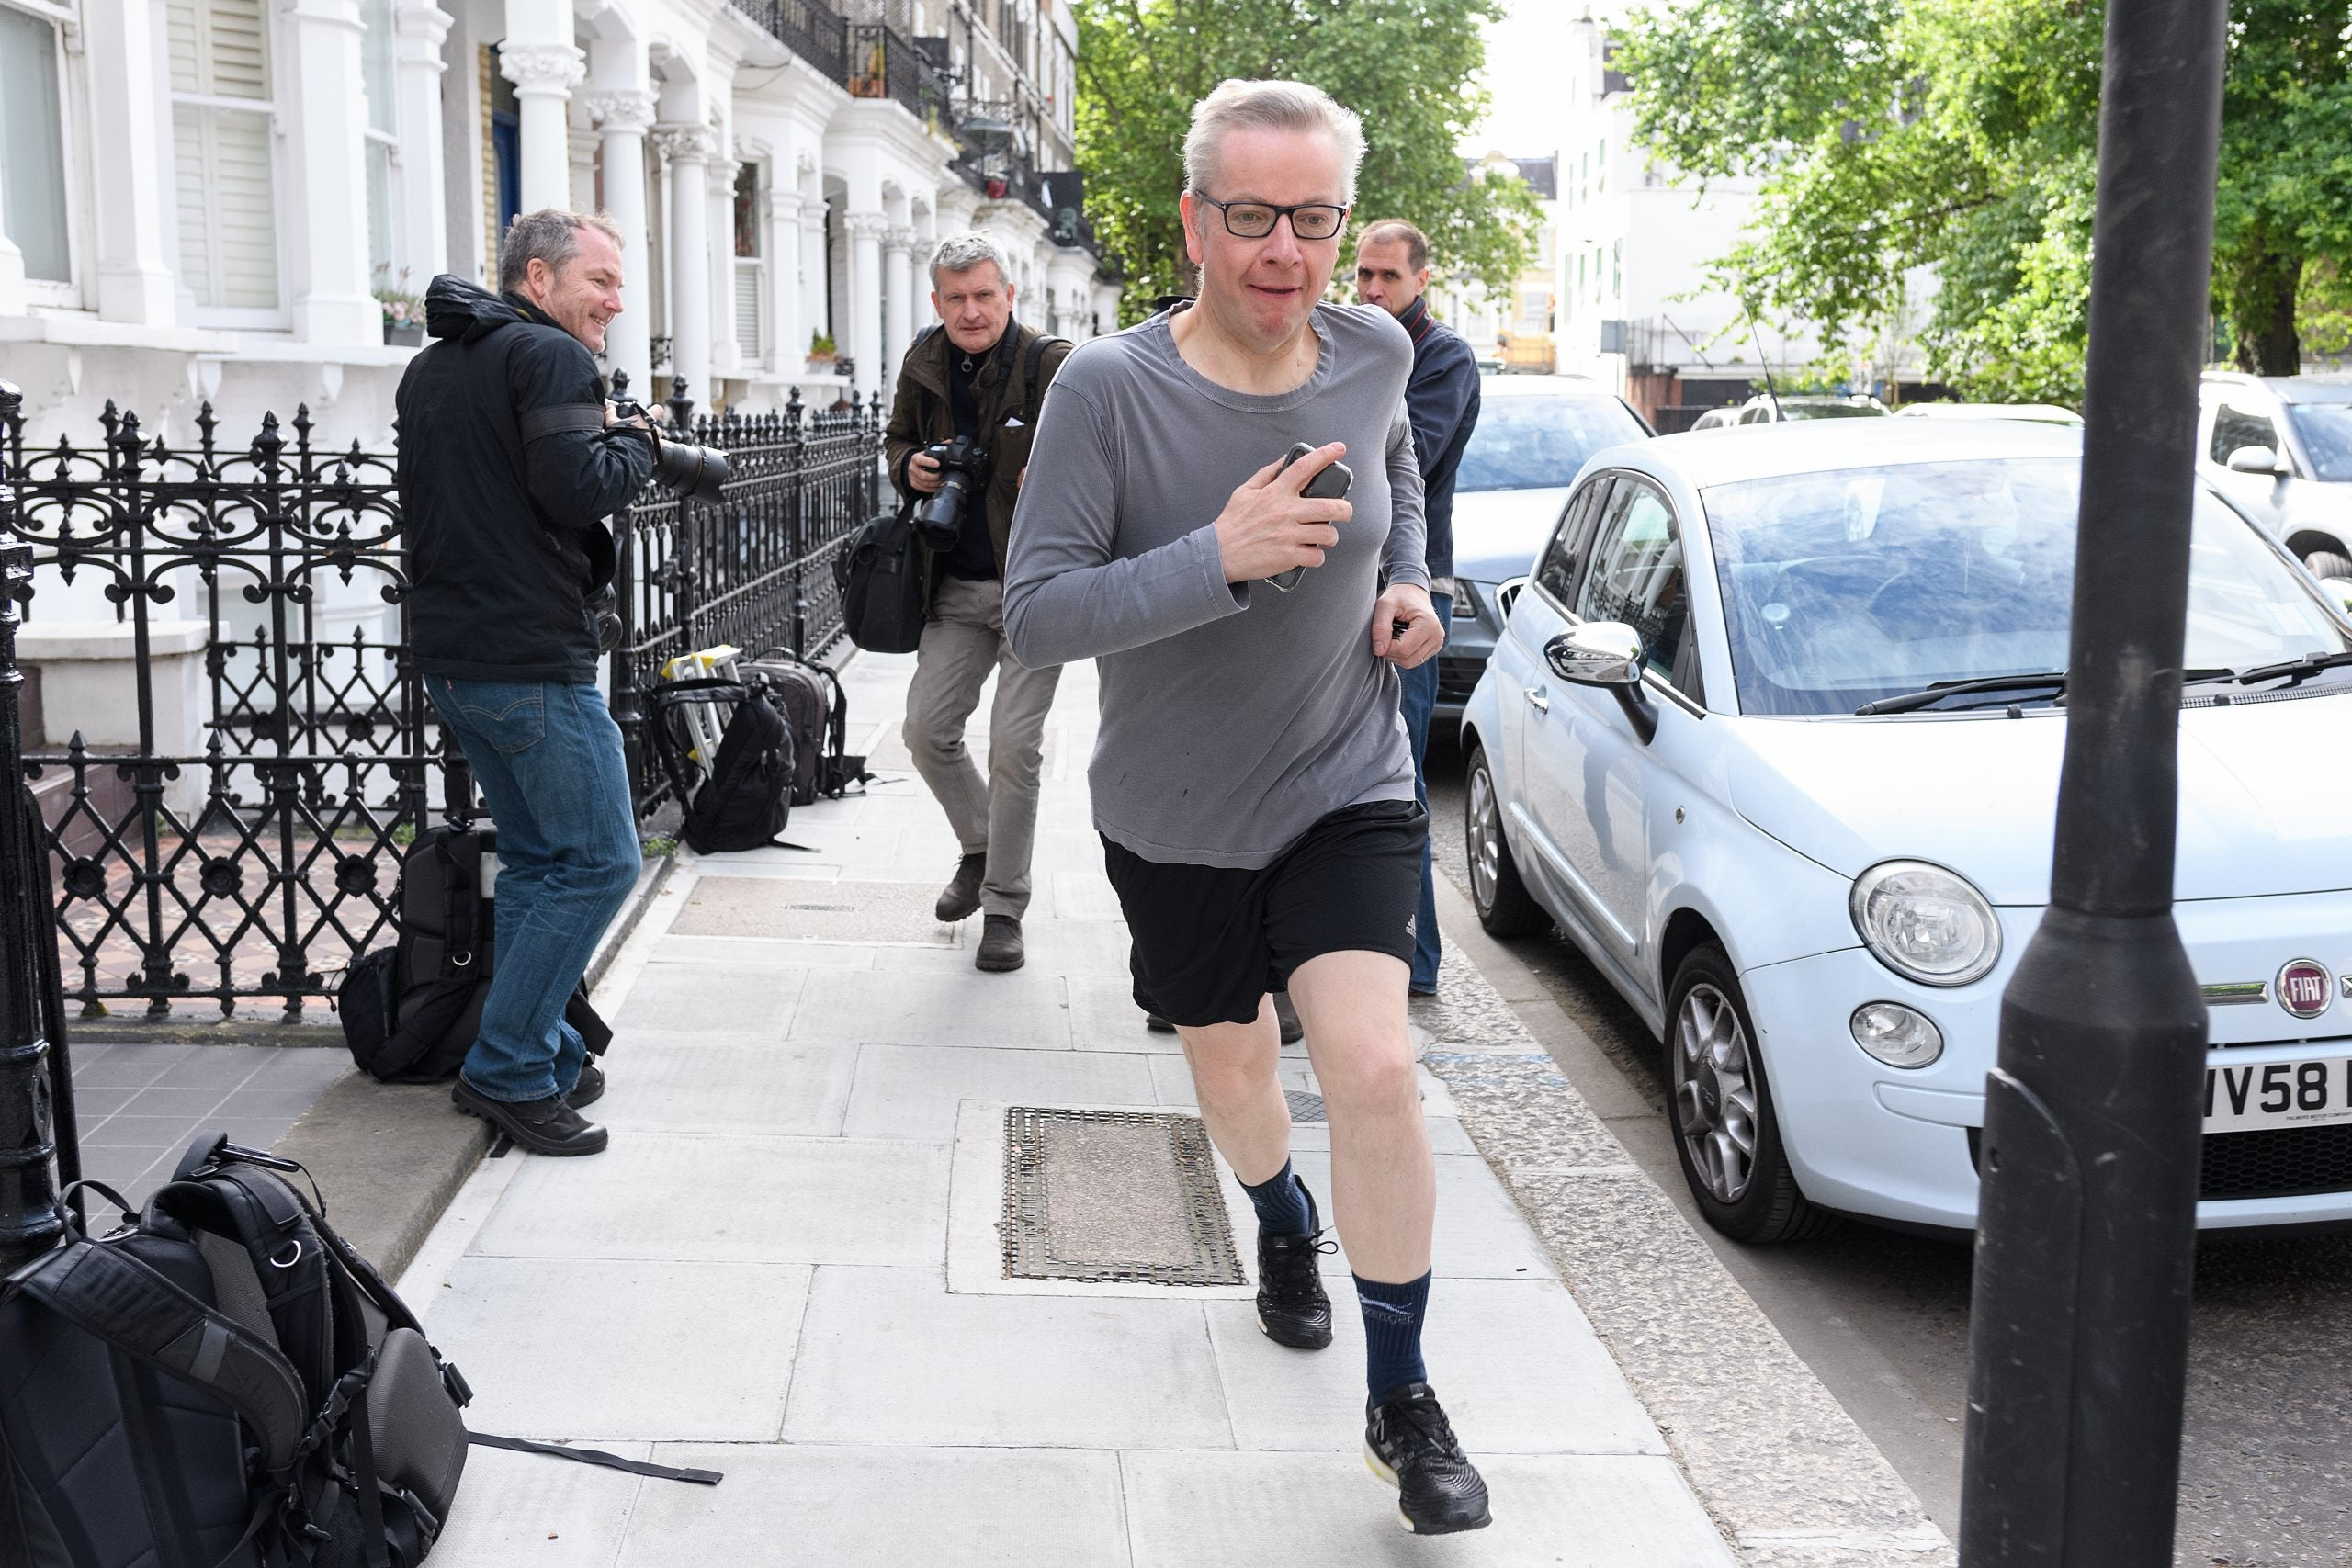 Commons Confidential: Michael Gove's sweatless scampers